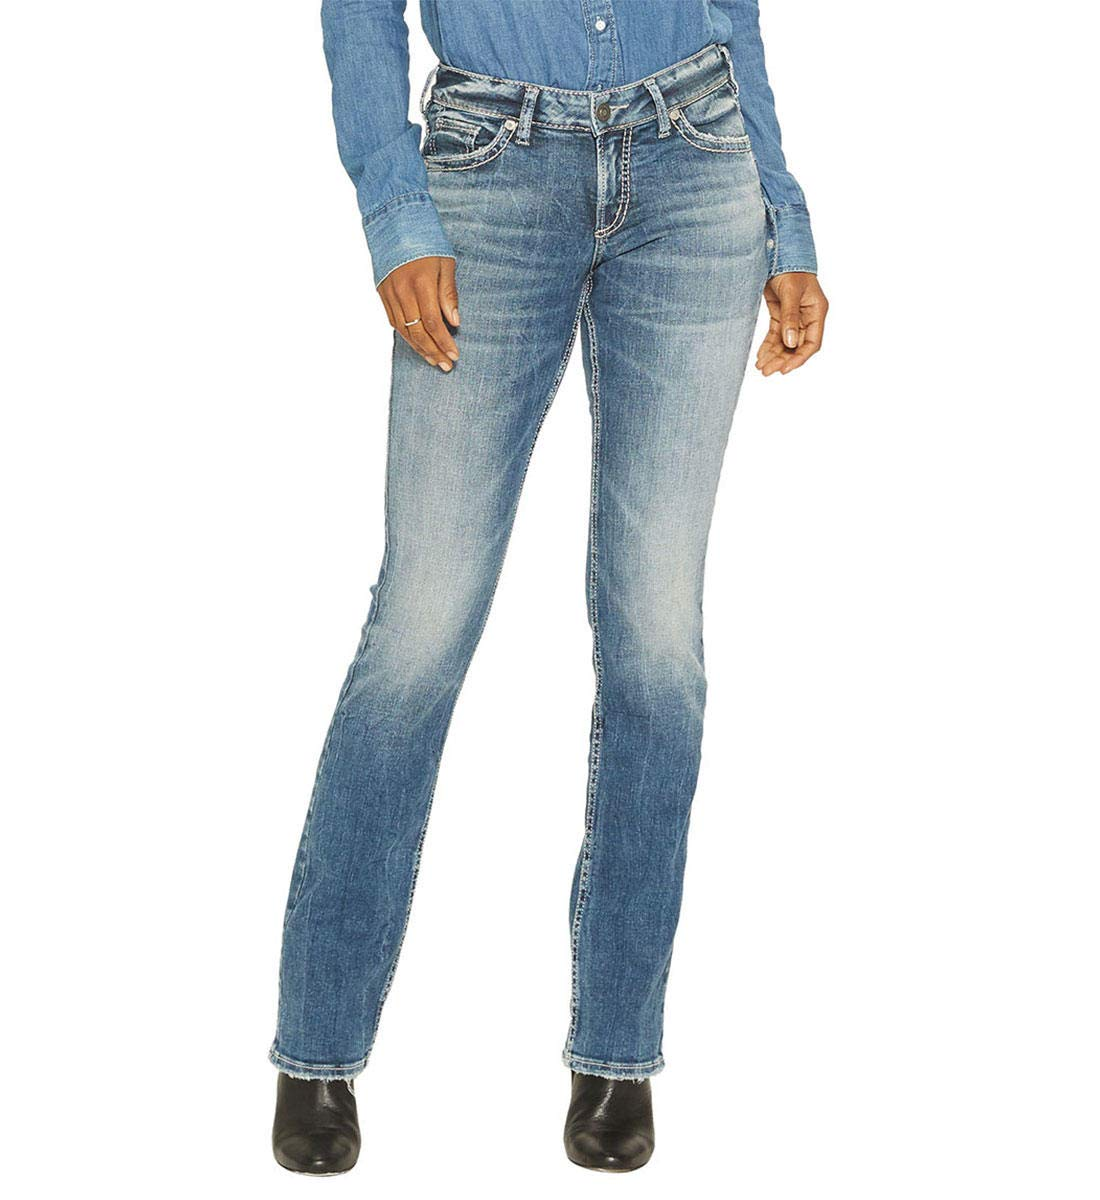 Suki Curvy Fit Mid Rise Slim Bootcut Jeans Silver Jeans Co. 2000216238